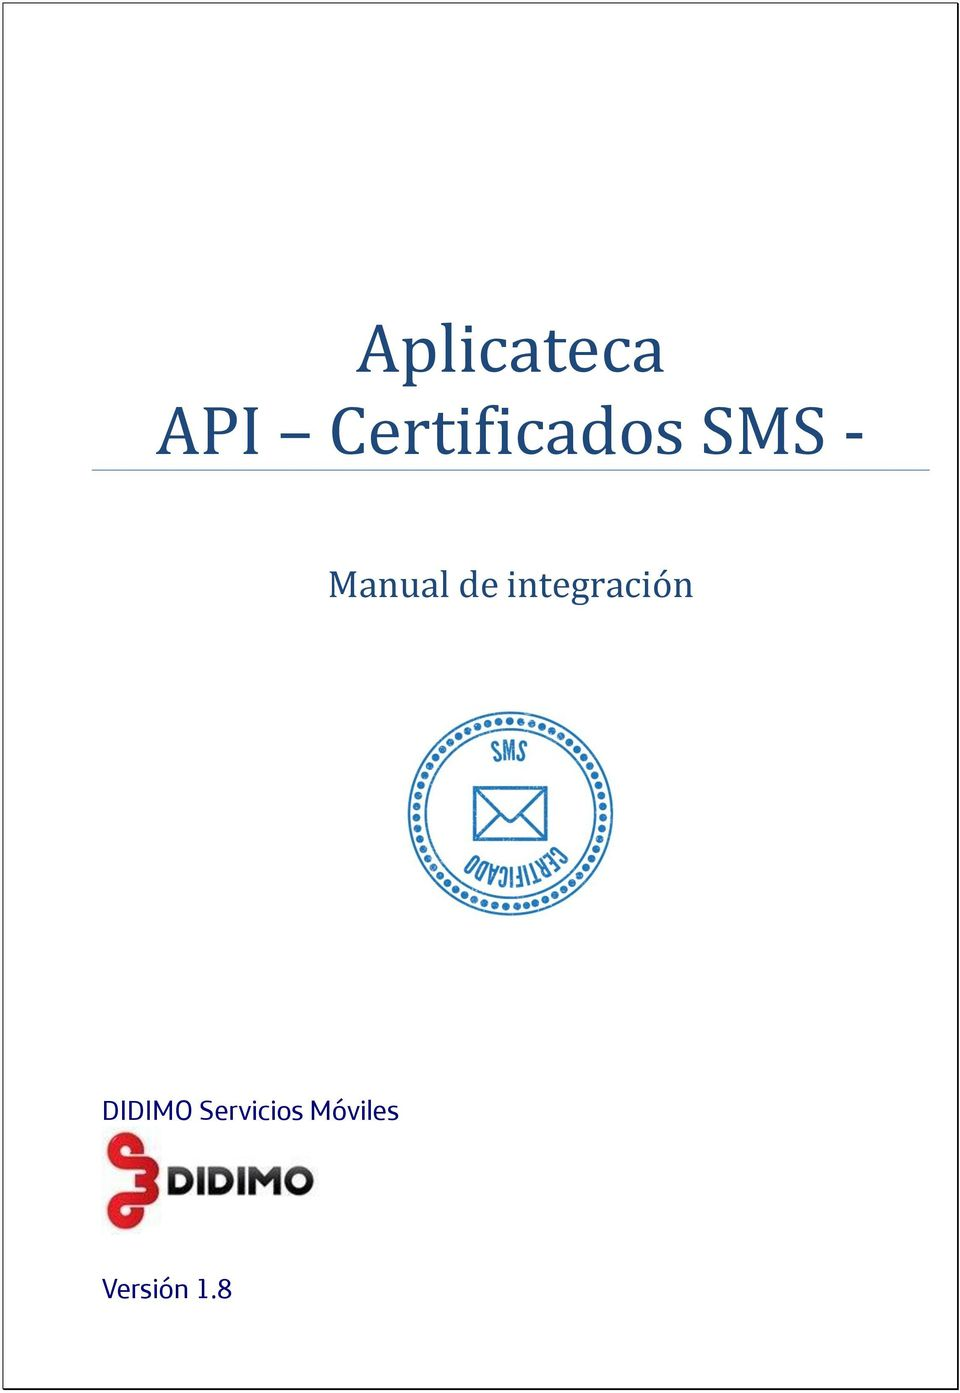 Manual de integración